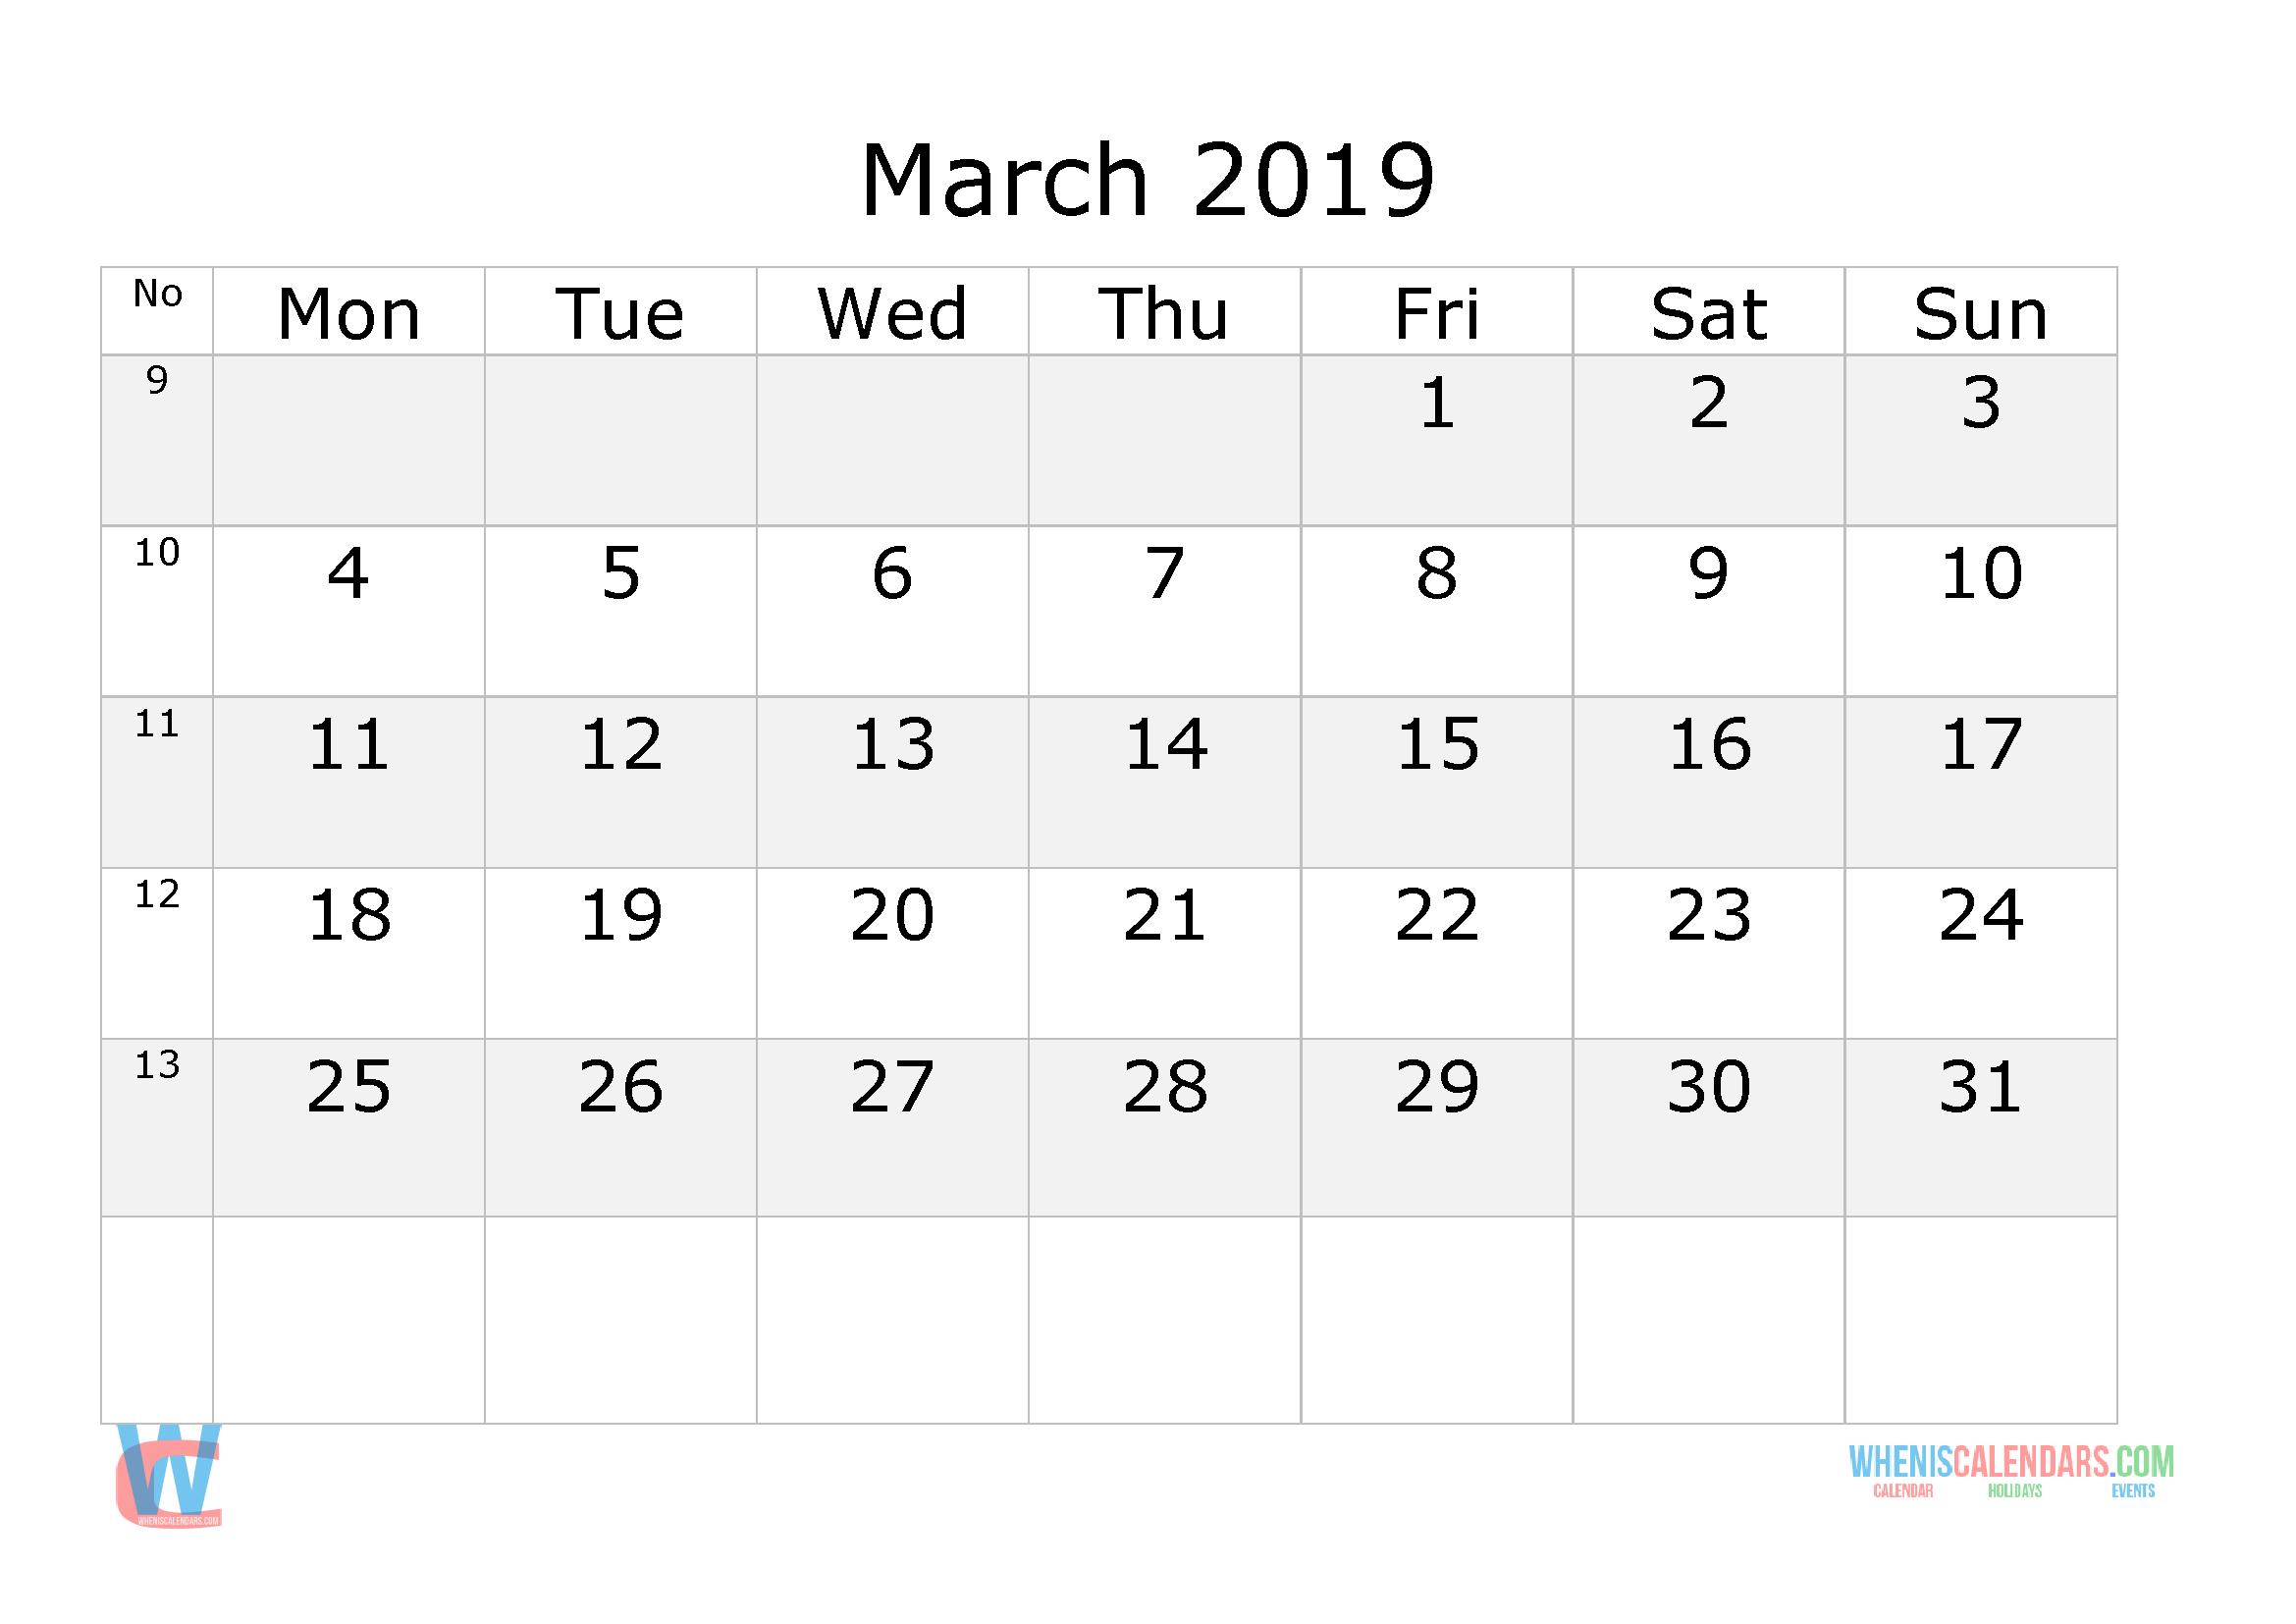 March 2019 Calendar With Week Numbers Printable, Start